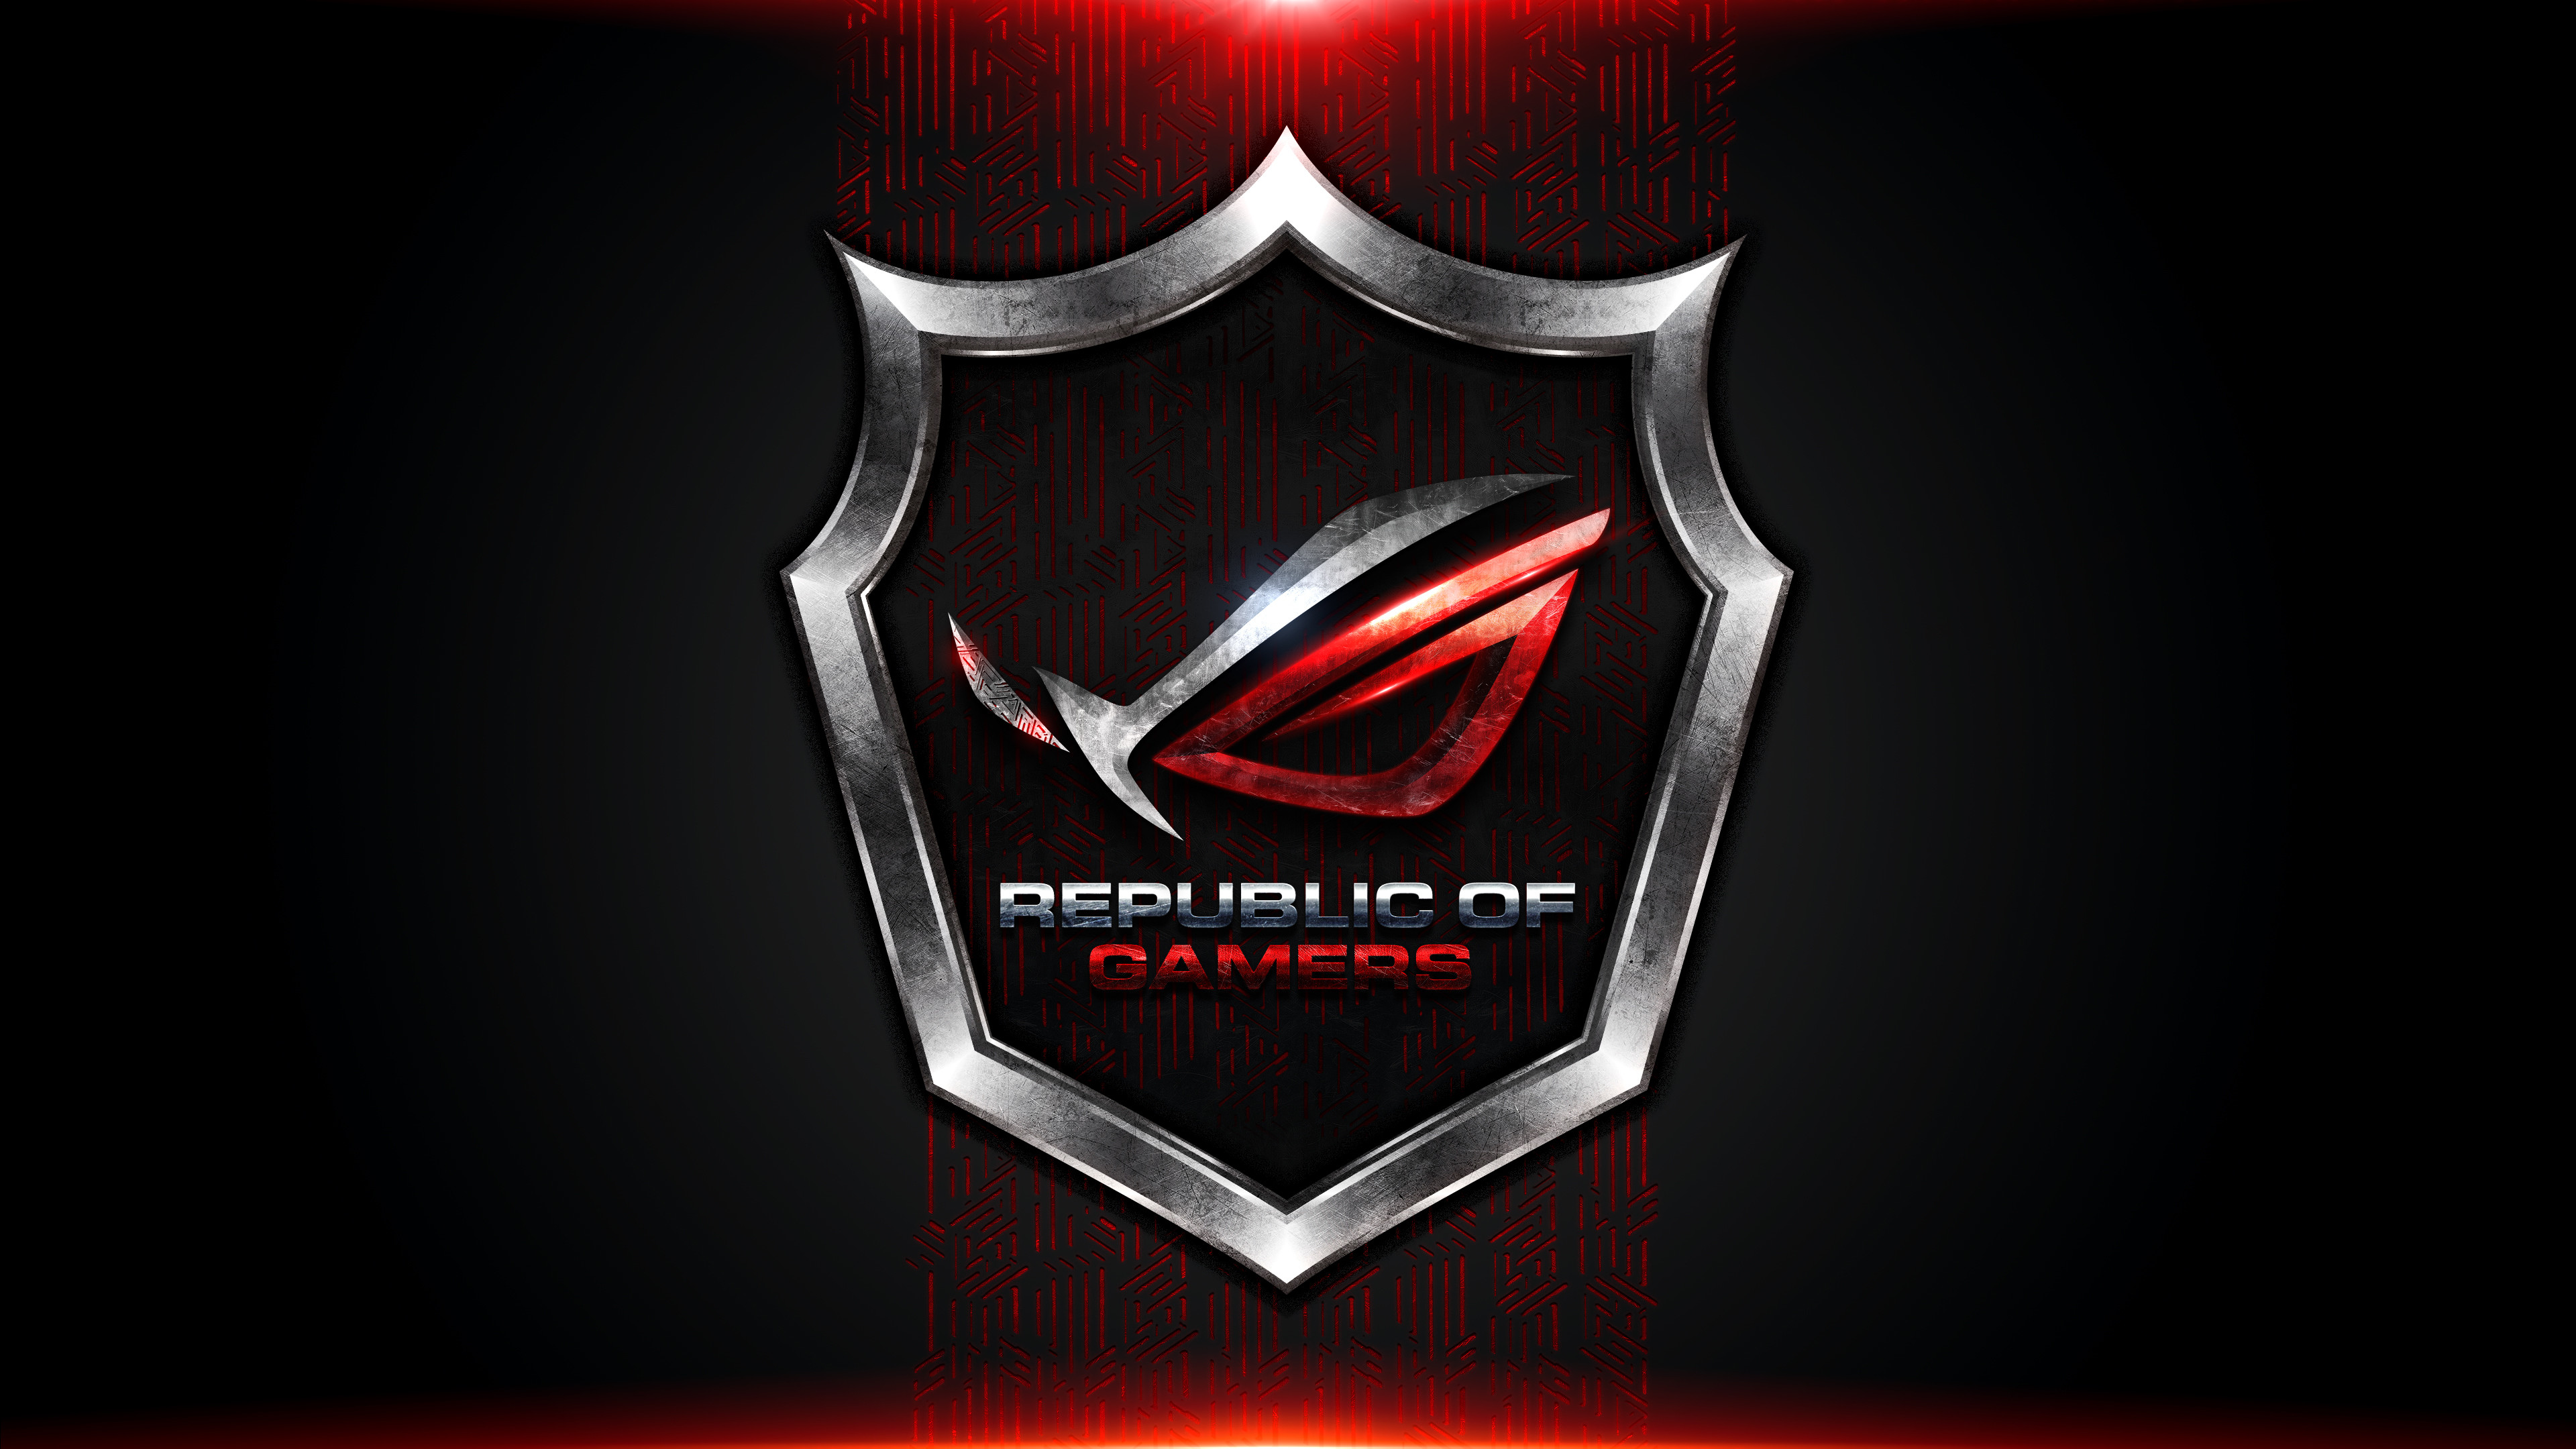 3840x2160 Asus Republic Of Gamers Wallpapers